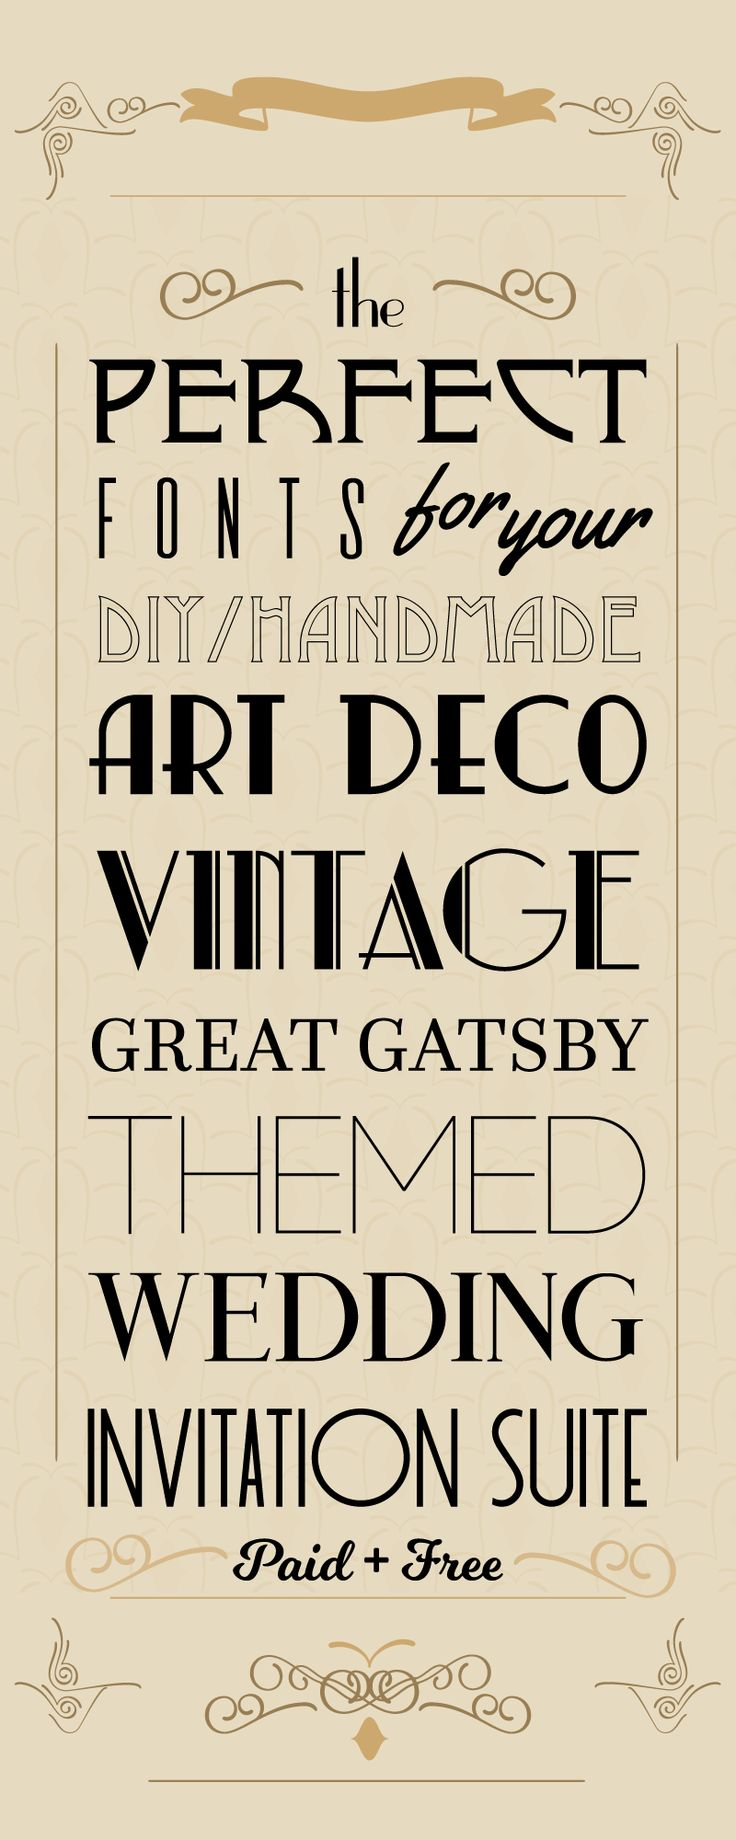 Are you looking for the perfect vintage wedding invitation fonts for your vintage, art deco, or Great Gatsby-themed wedding invitation suite? Try these!